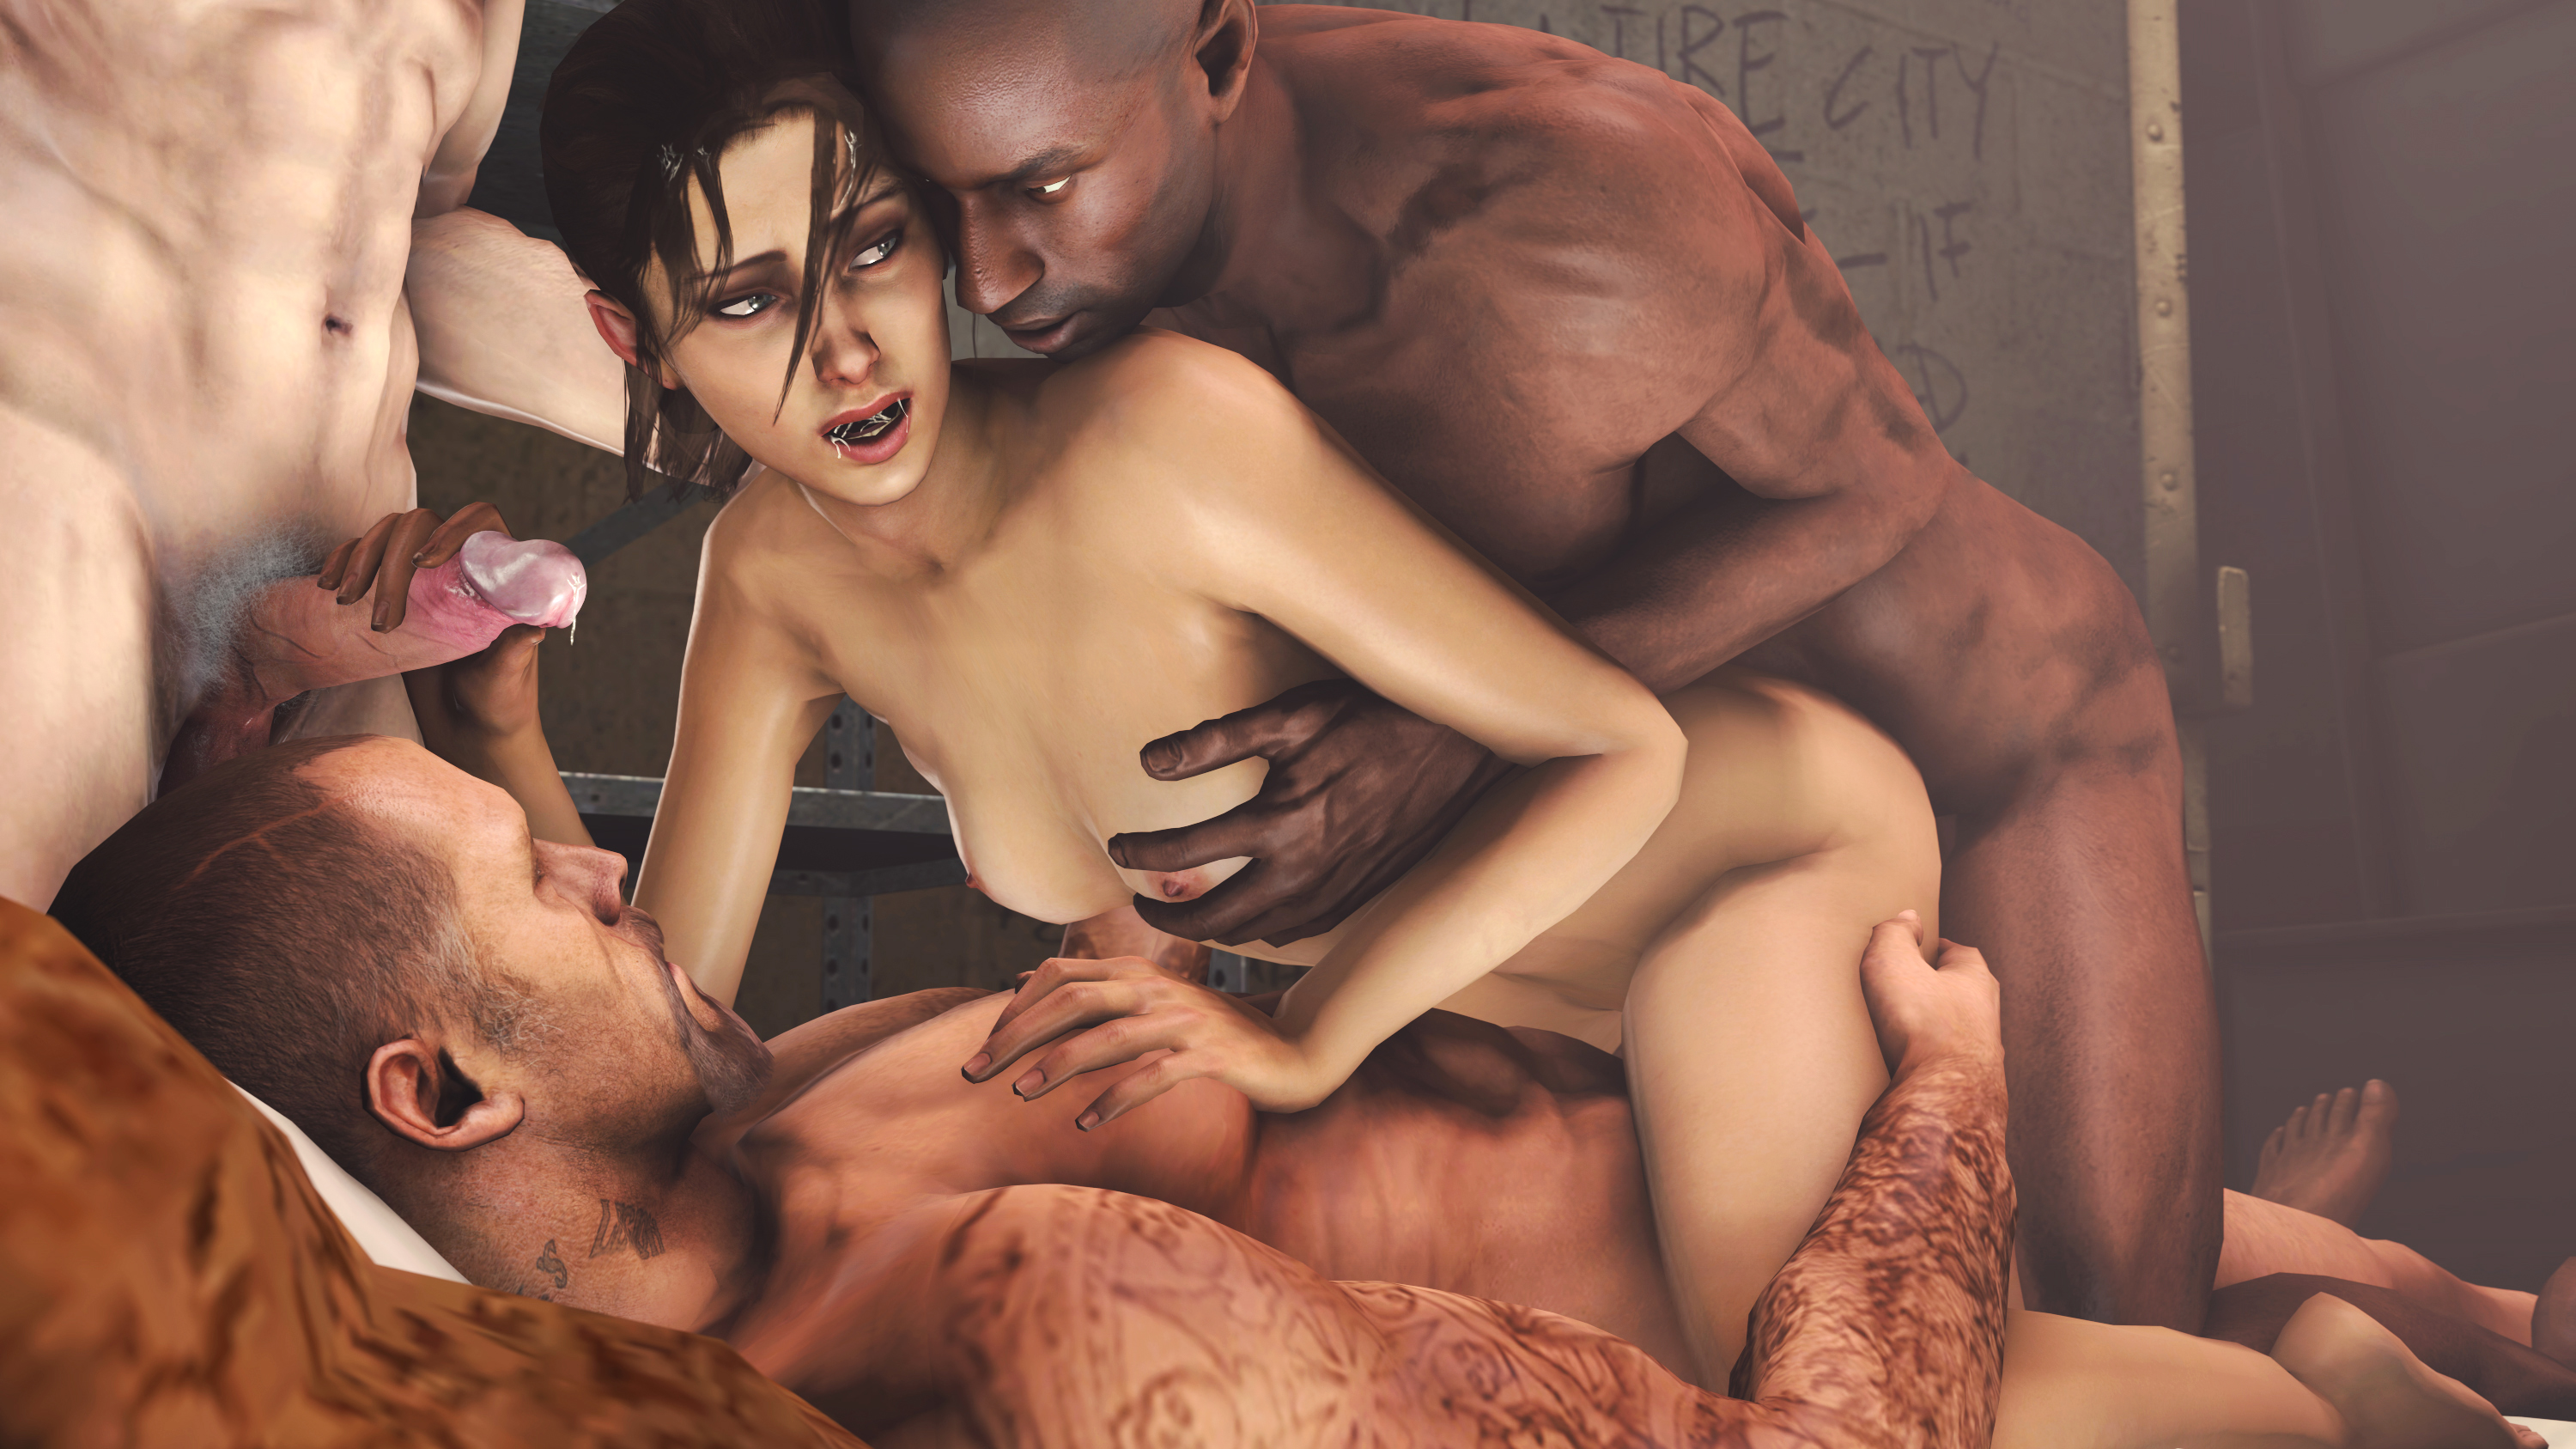 3d videos porno left 4 dead nude pic